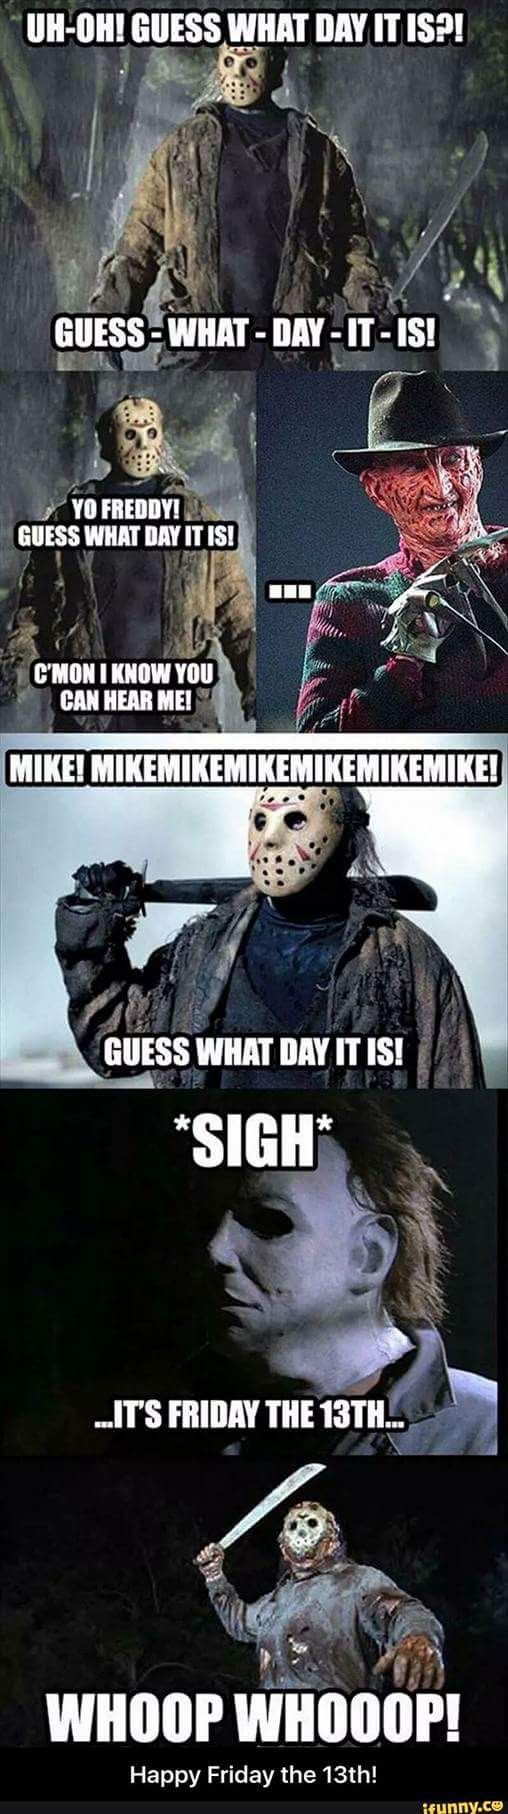 Silly Friday the 13th meme haha  Jason Freddy and Michael Myers